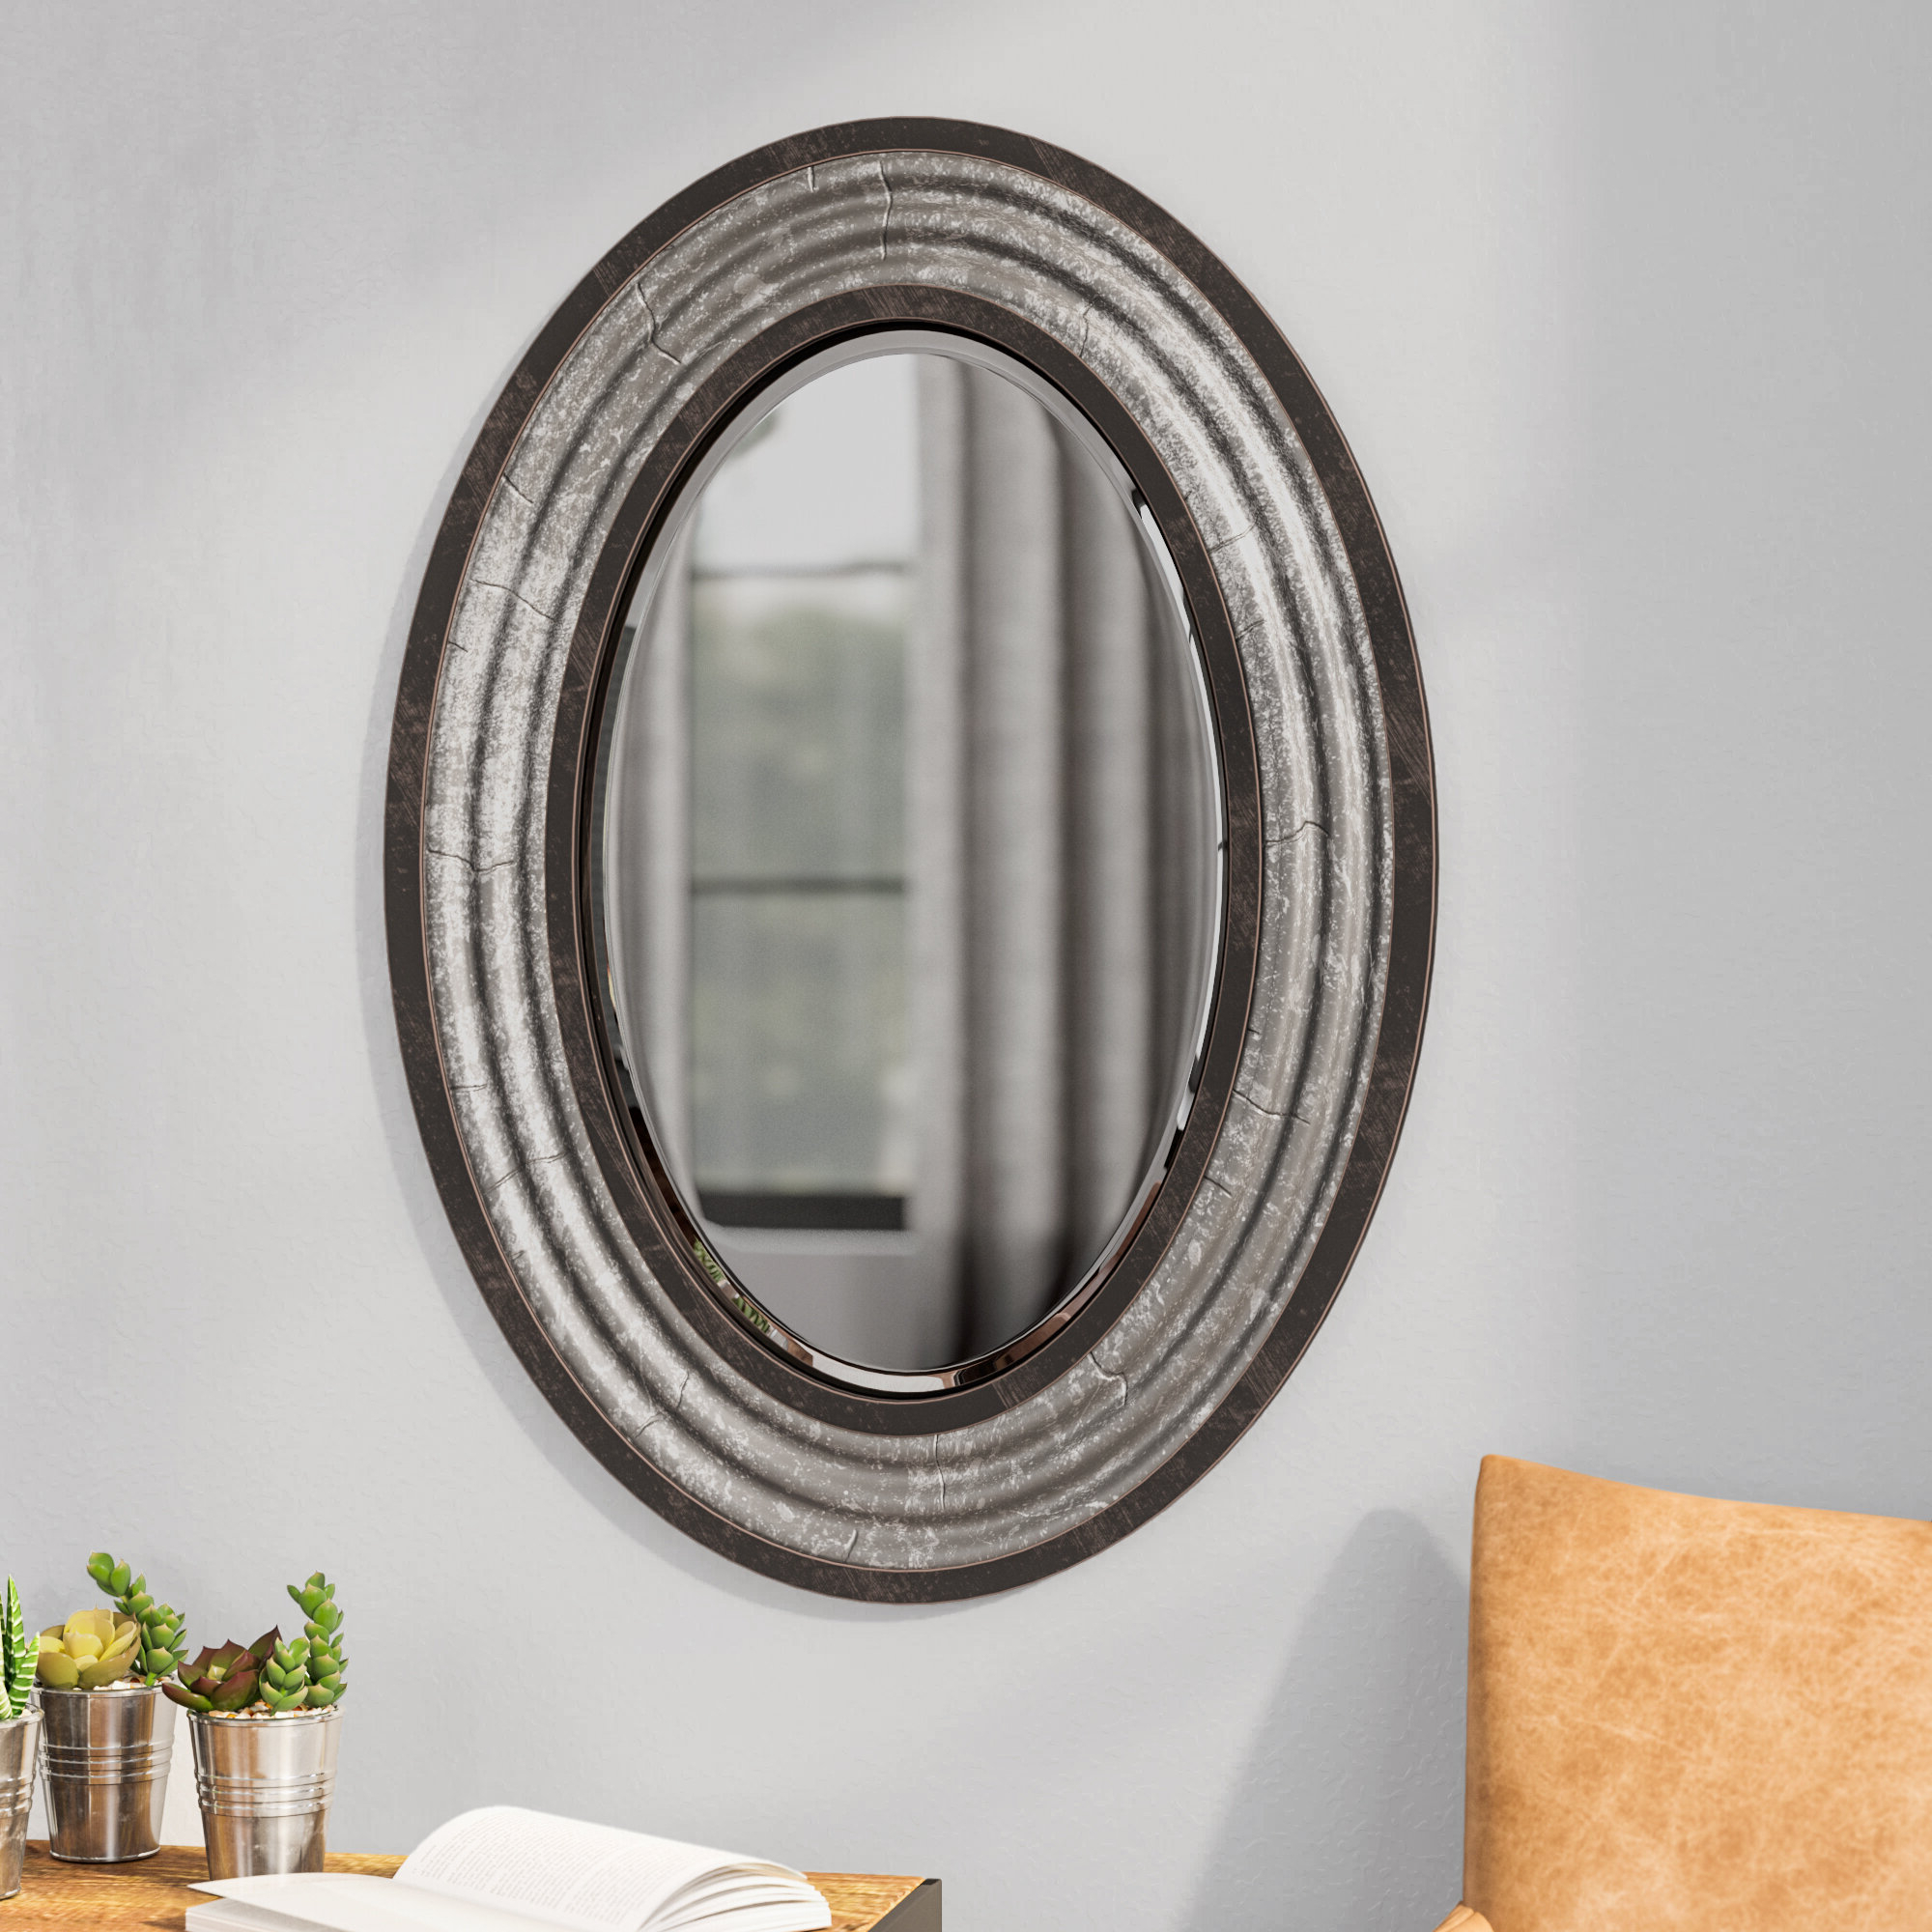 Modern & Contemporary Beveled Wall Mirrors In Popular Modern & Contemporary Beveled Wall Mirror (Gallery 1 of 20)